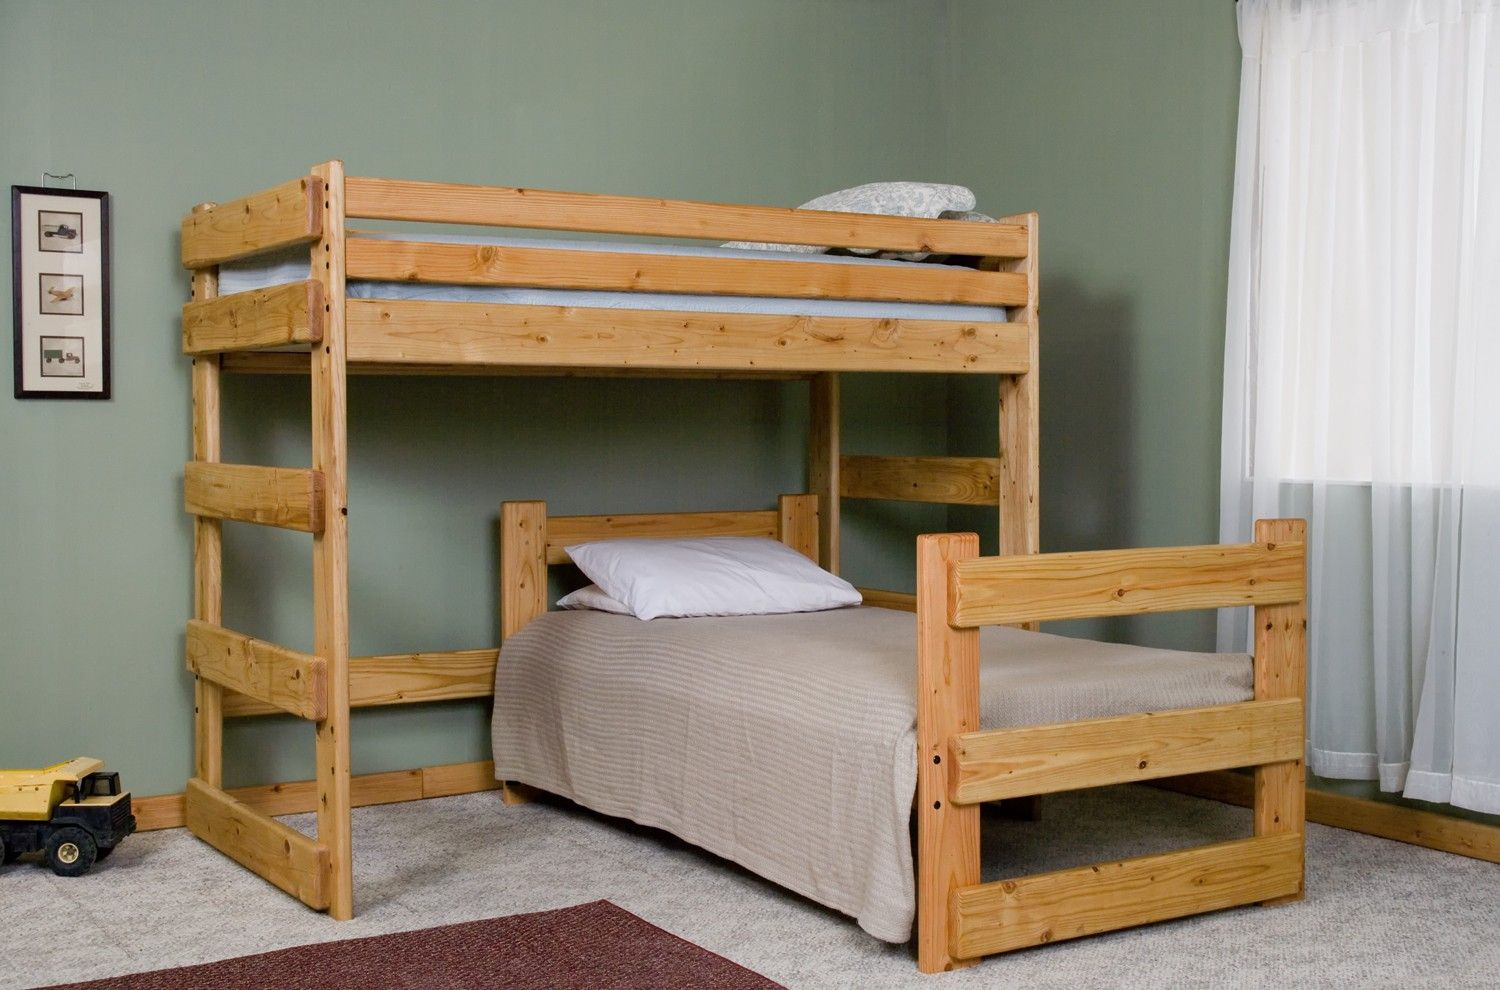 t shaped bunk beds Google Search Bunk bed plans, L